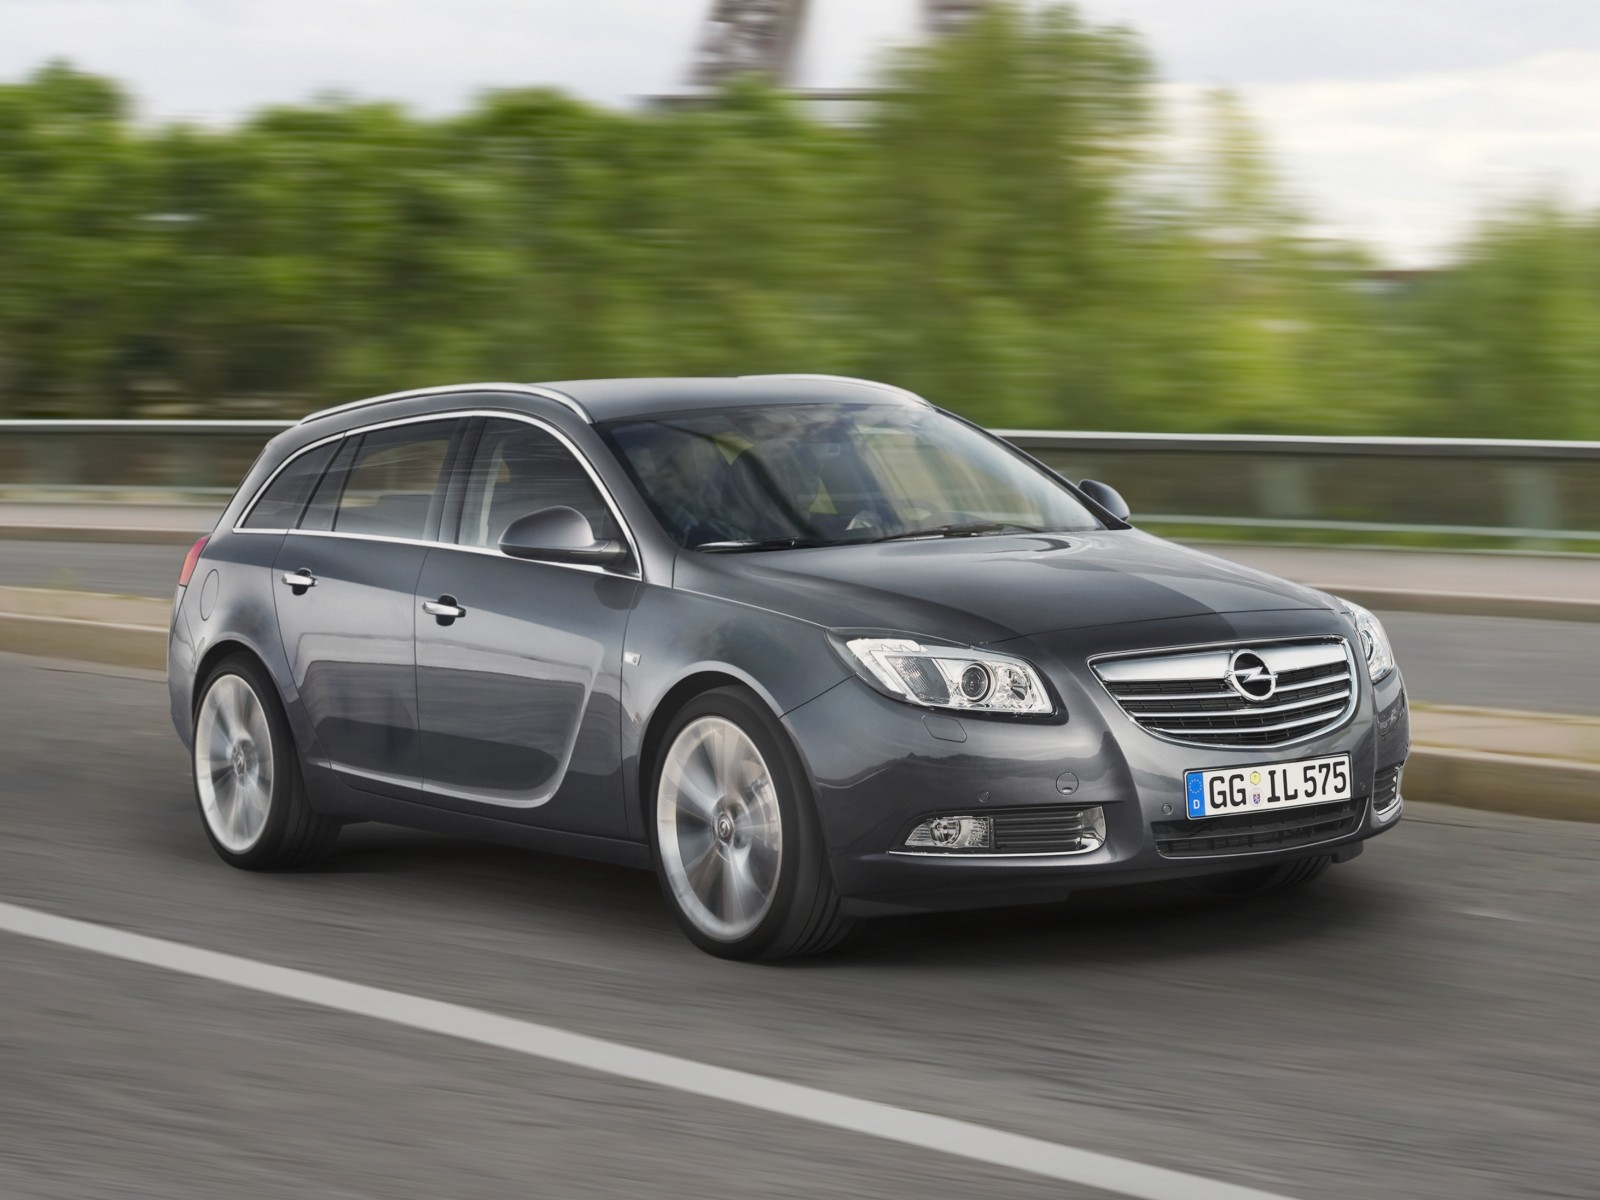 2009 vauxhall insignia sports tourer partsopen. Black Bedroom Furniture Sets. Home Design Ideas